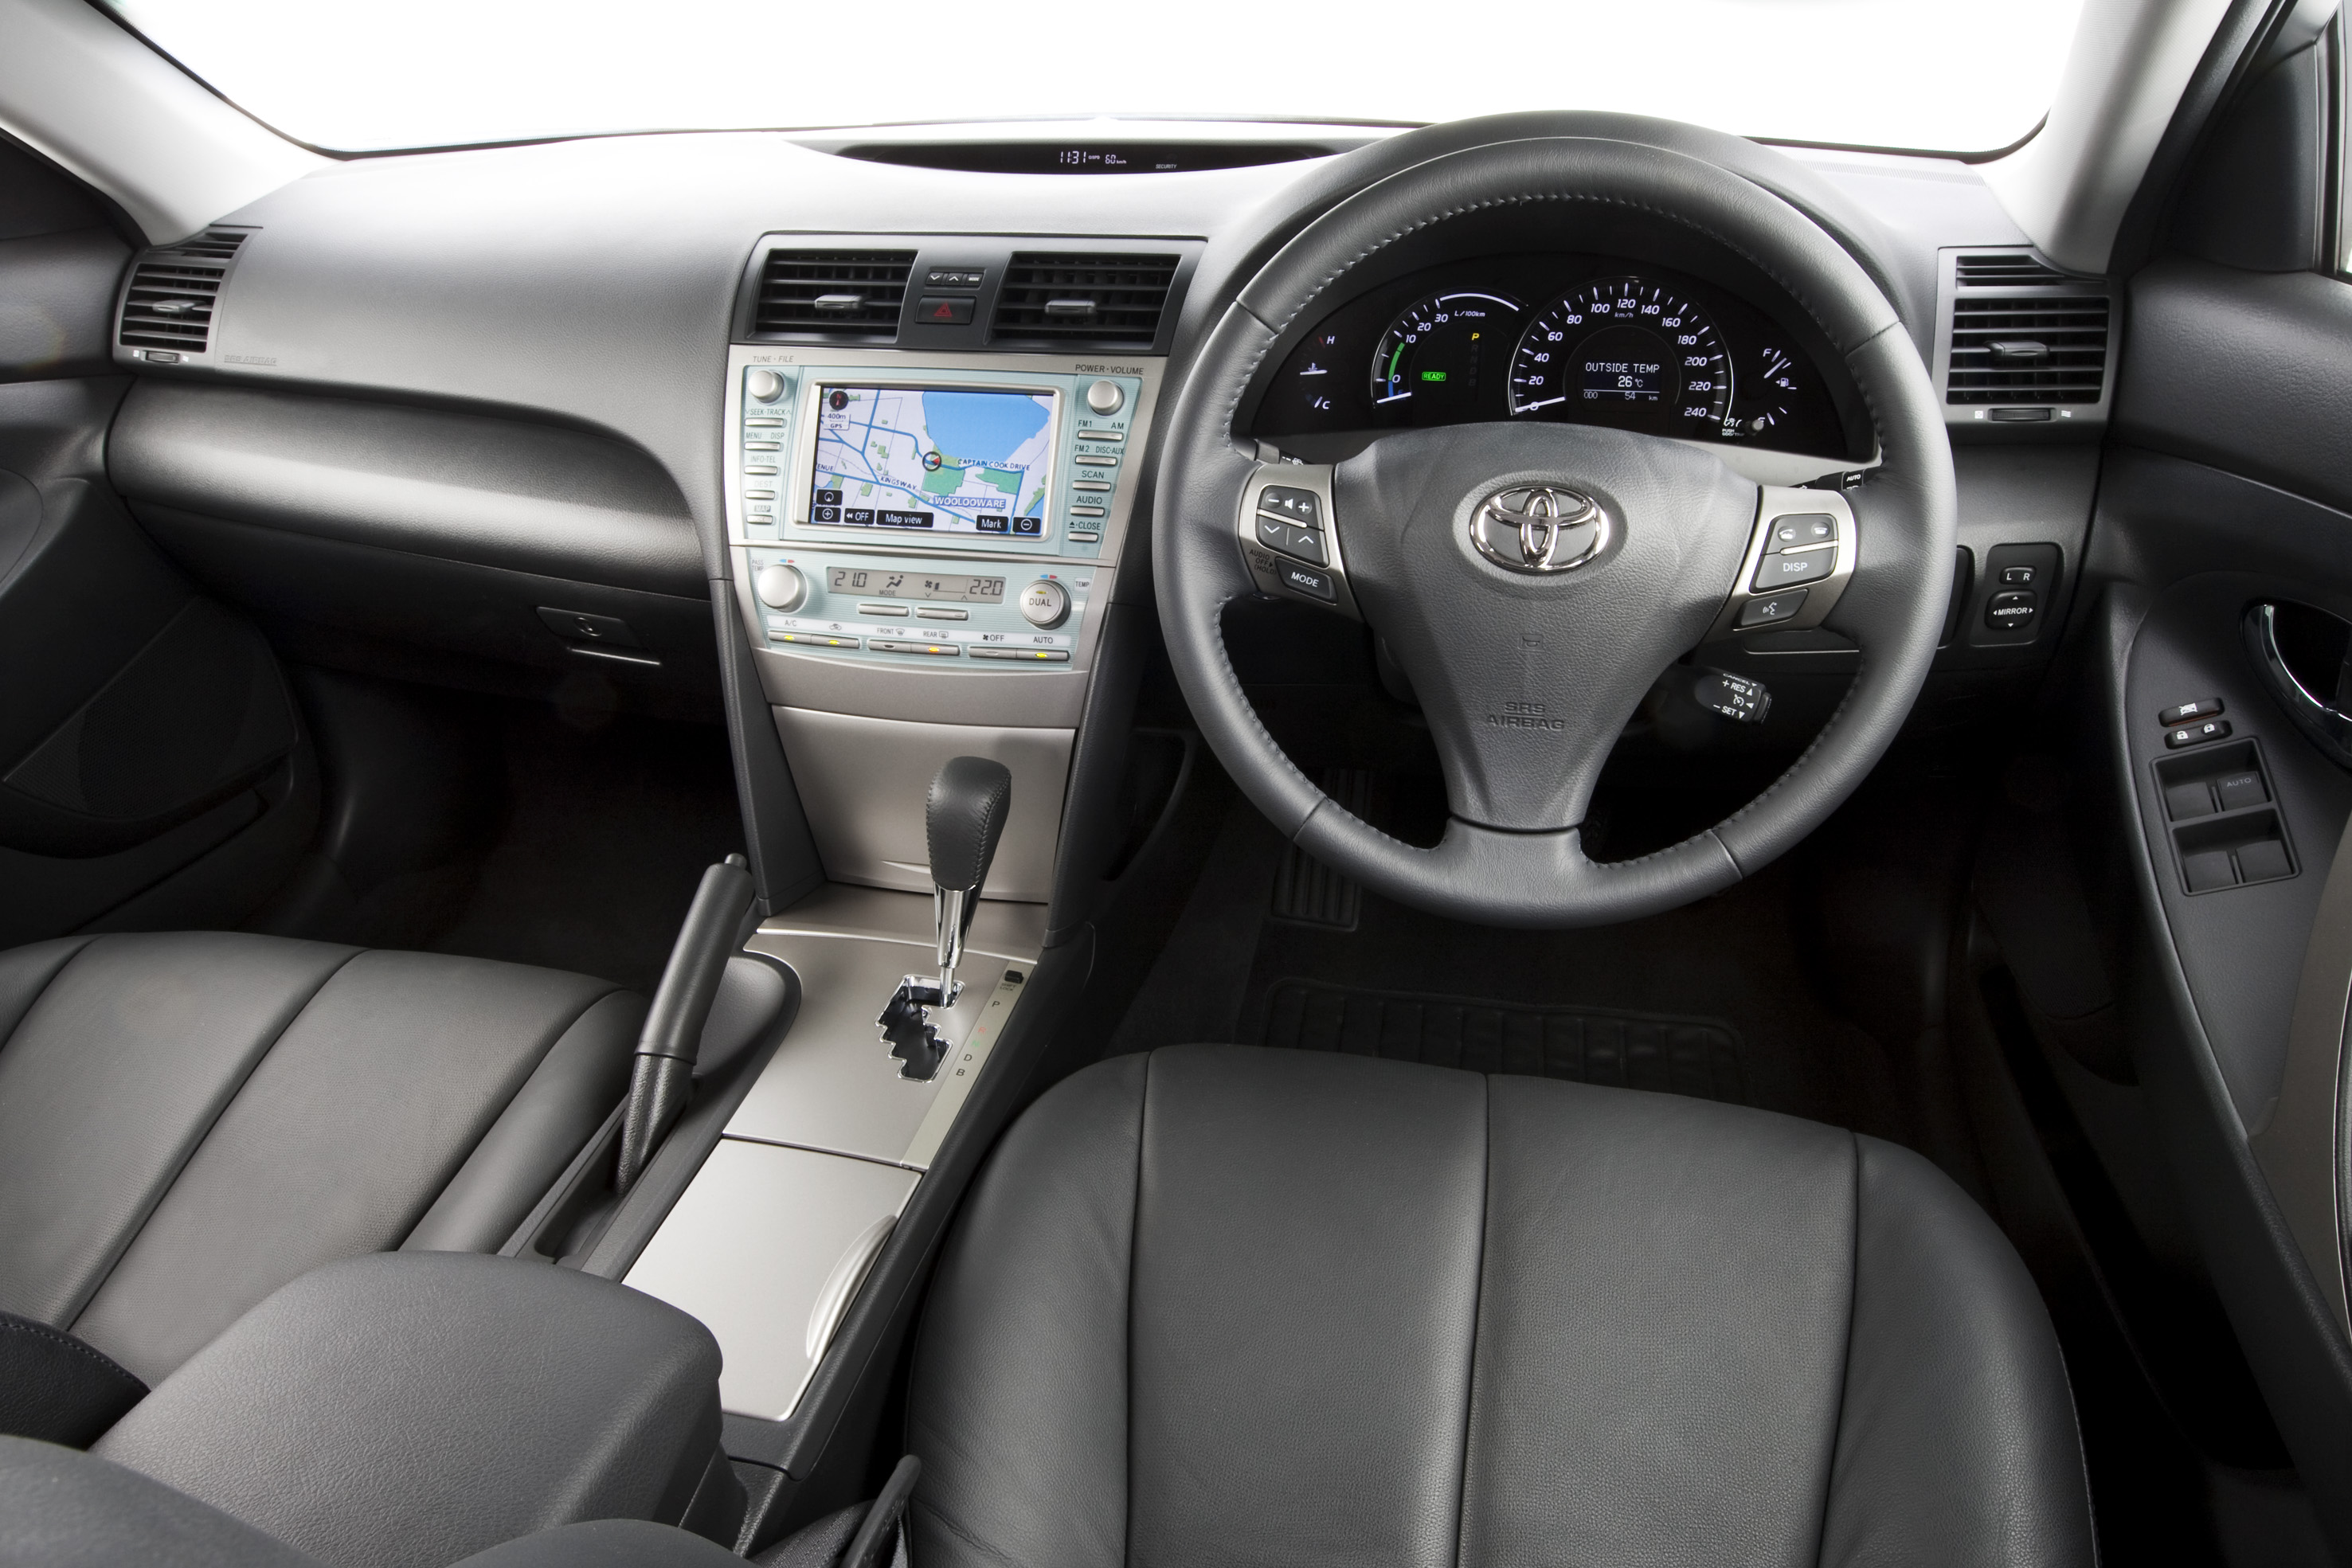 2010_hybrid_camry_luxury_roadtest_review_10